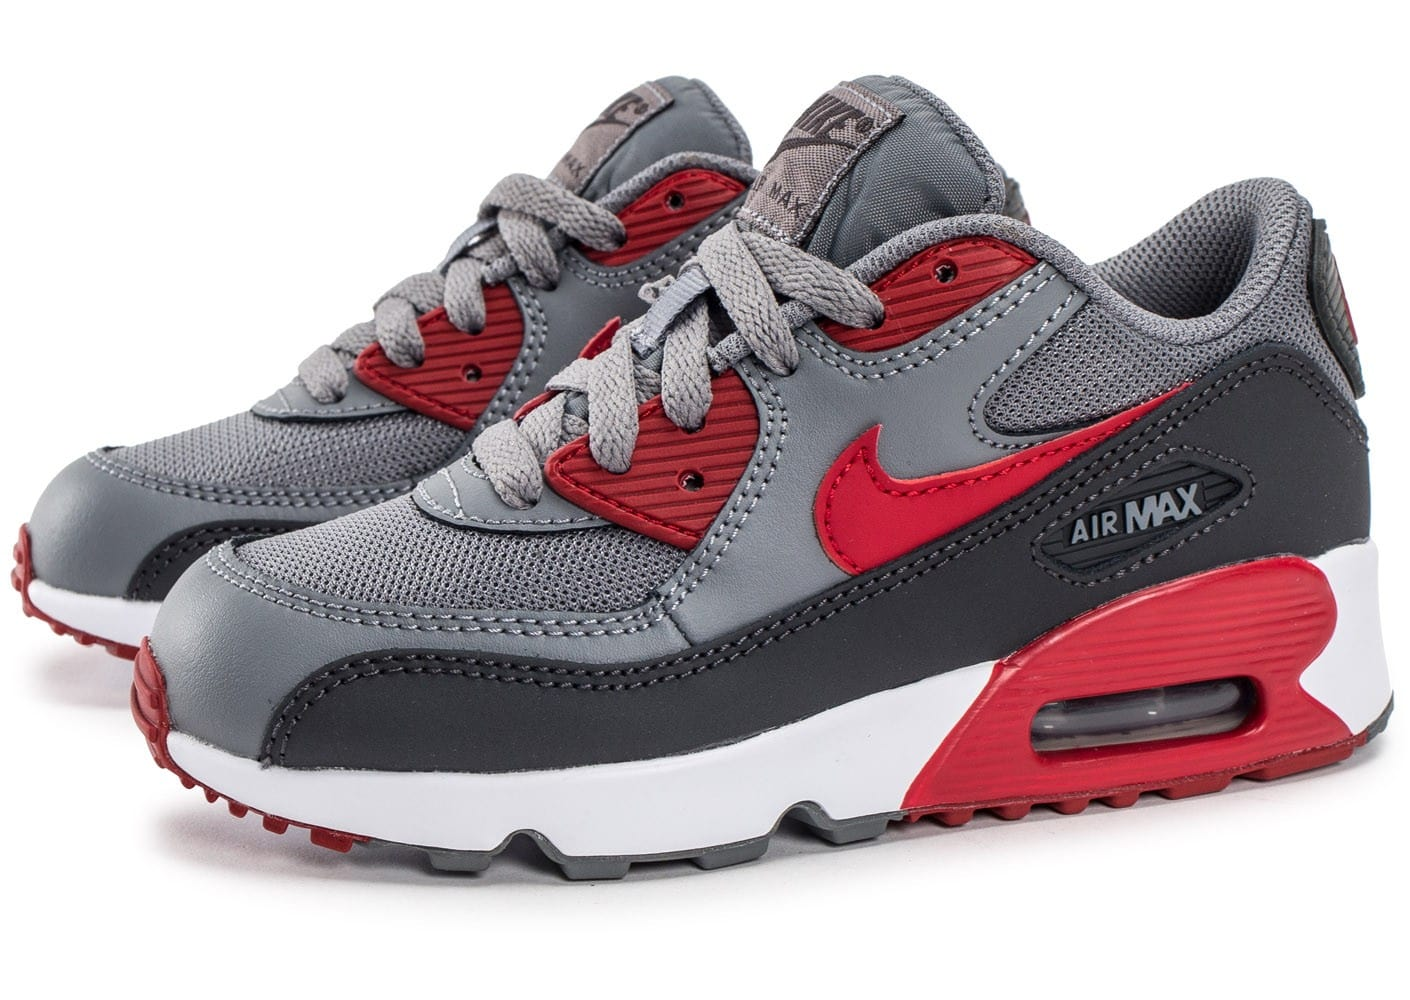 nike air max 90 rouge et grise. Black Bedroom Furniture Sets. Home Design Ideas